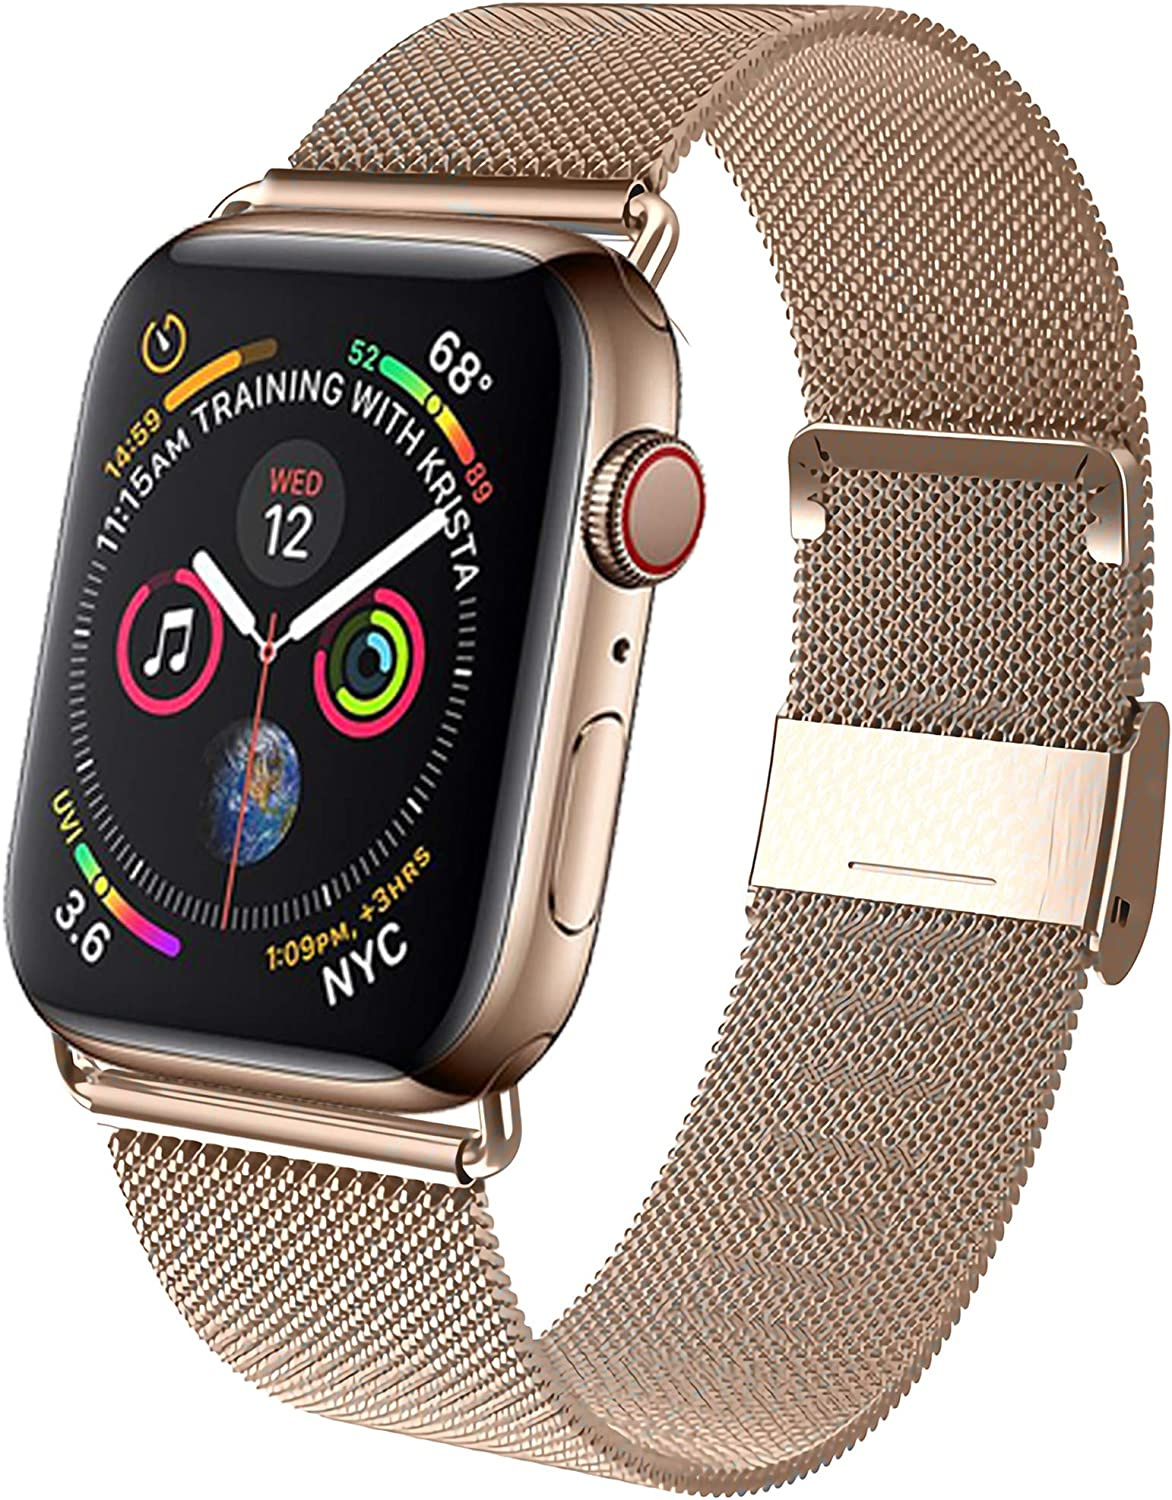 GBPOOT Band Compatible with Apple Watch Band 38mm 40mm 42mm 44mm, Wristband Loop Replacement Band for Iwatch Series 6/SE/5/4/3/2/1-Gold 38mm/40mm